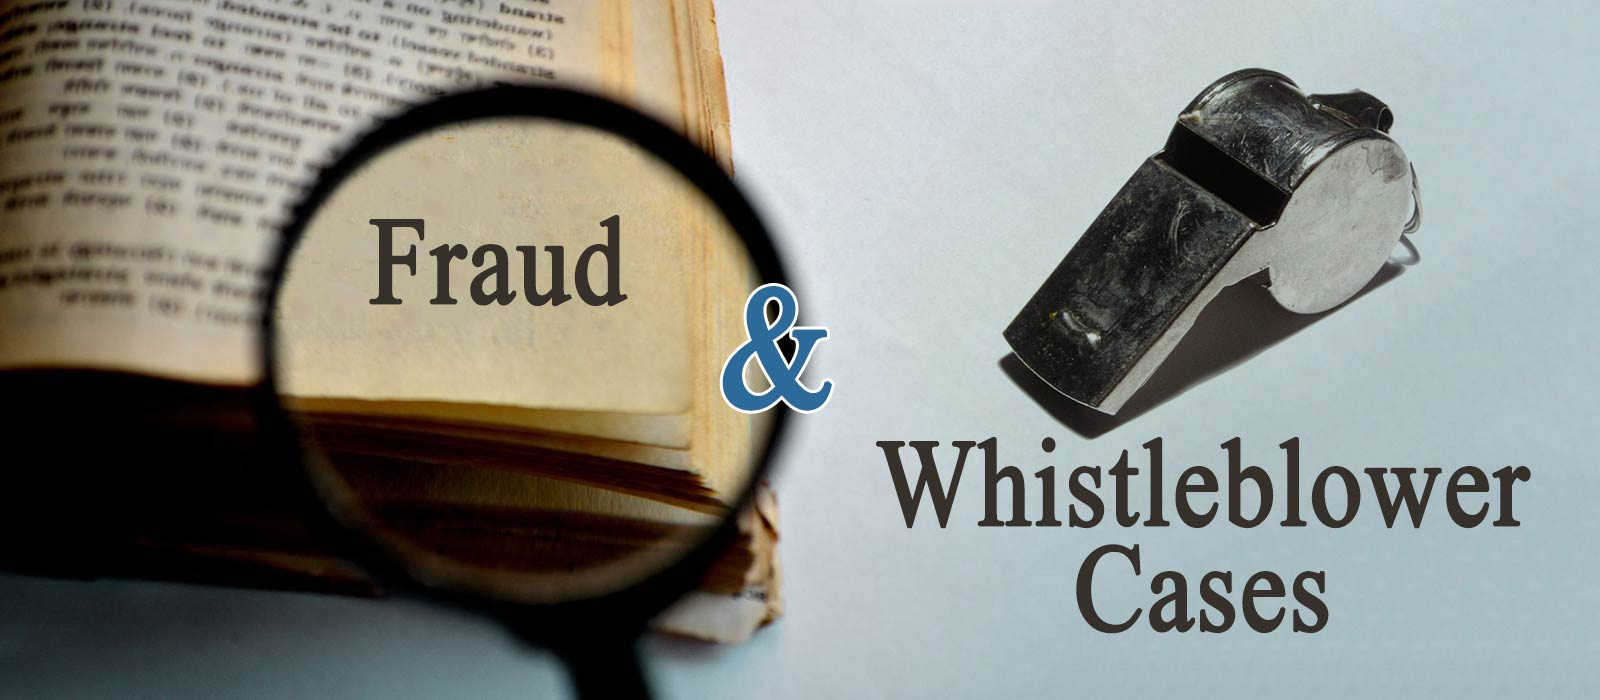 fraud5 Fraud and Whistleblower Cases